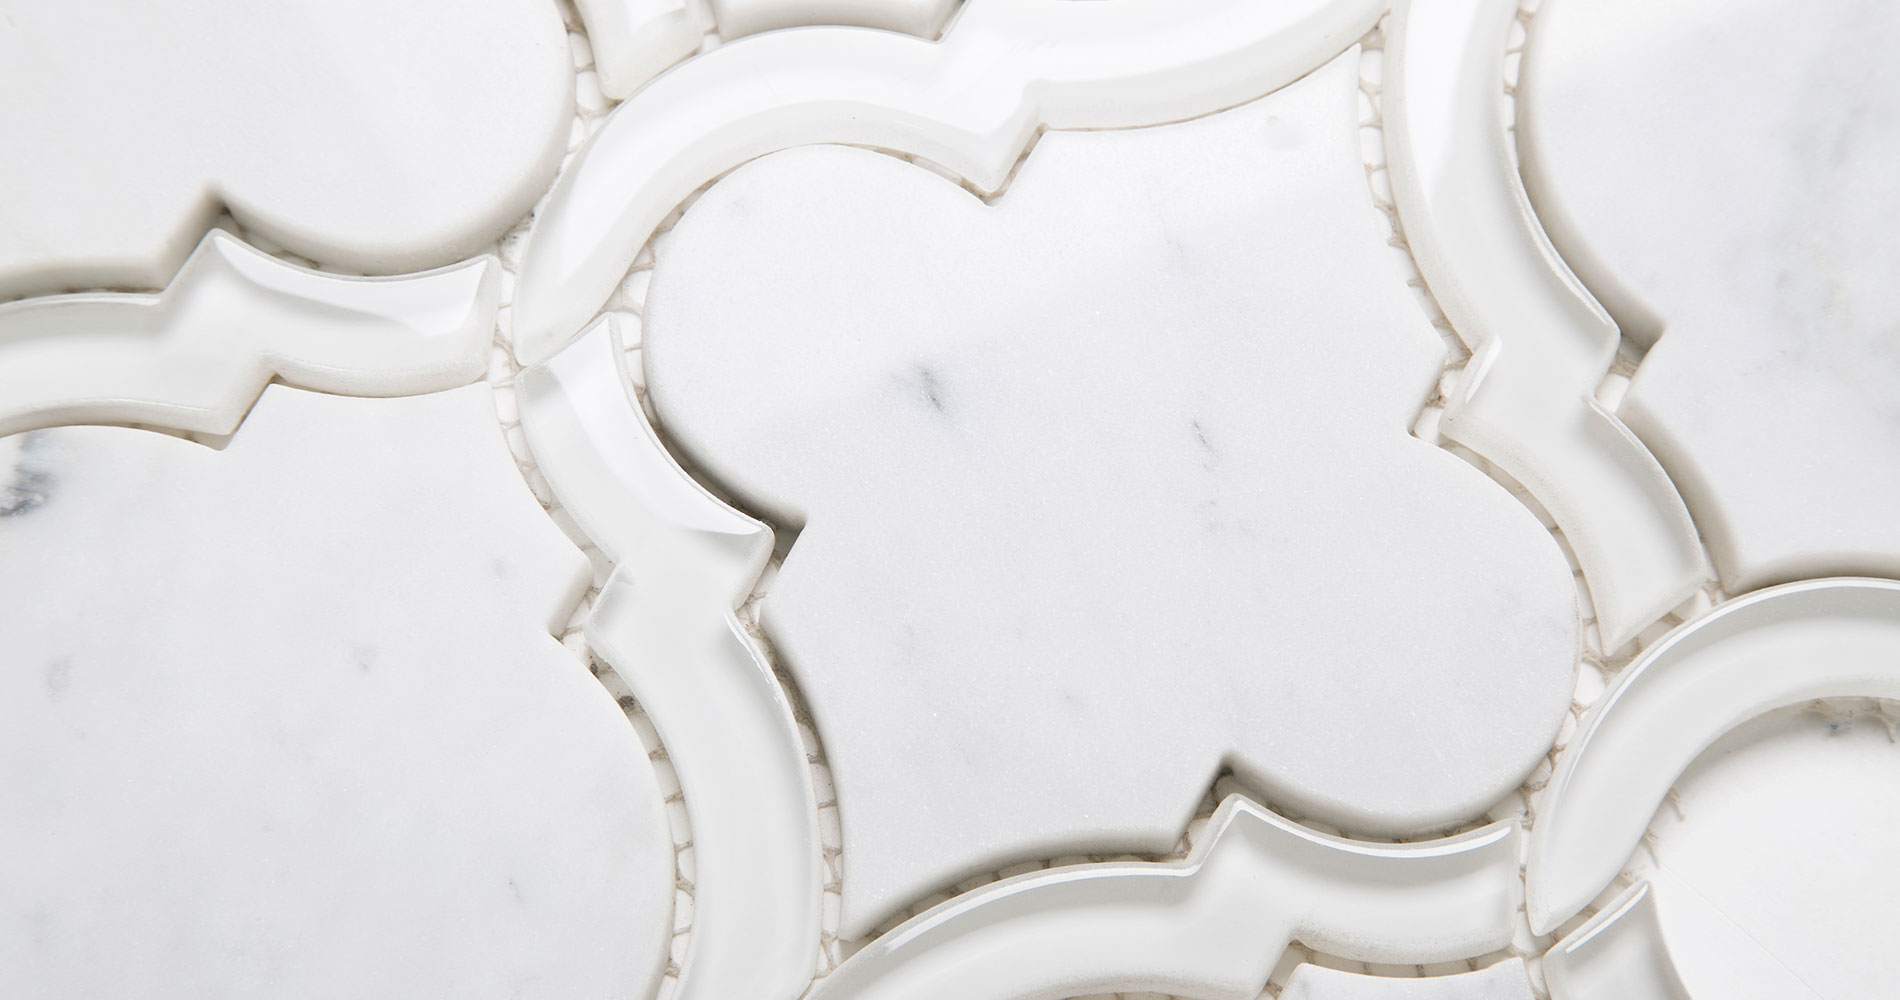 centurymosaic-Marble-and-Glass-Arabesque-Mosaic-Tile-Collection-4